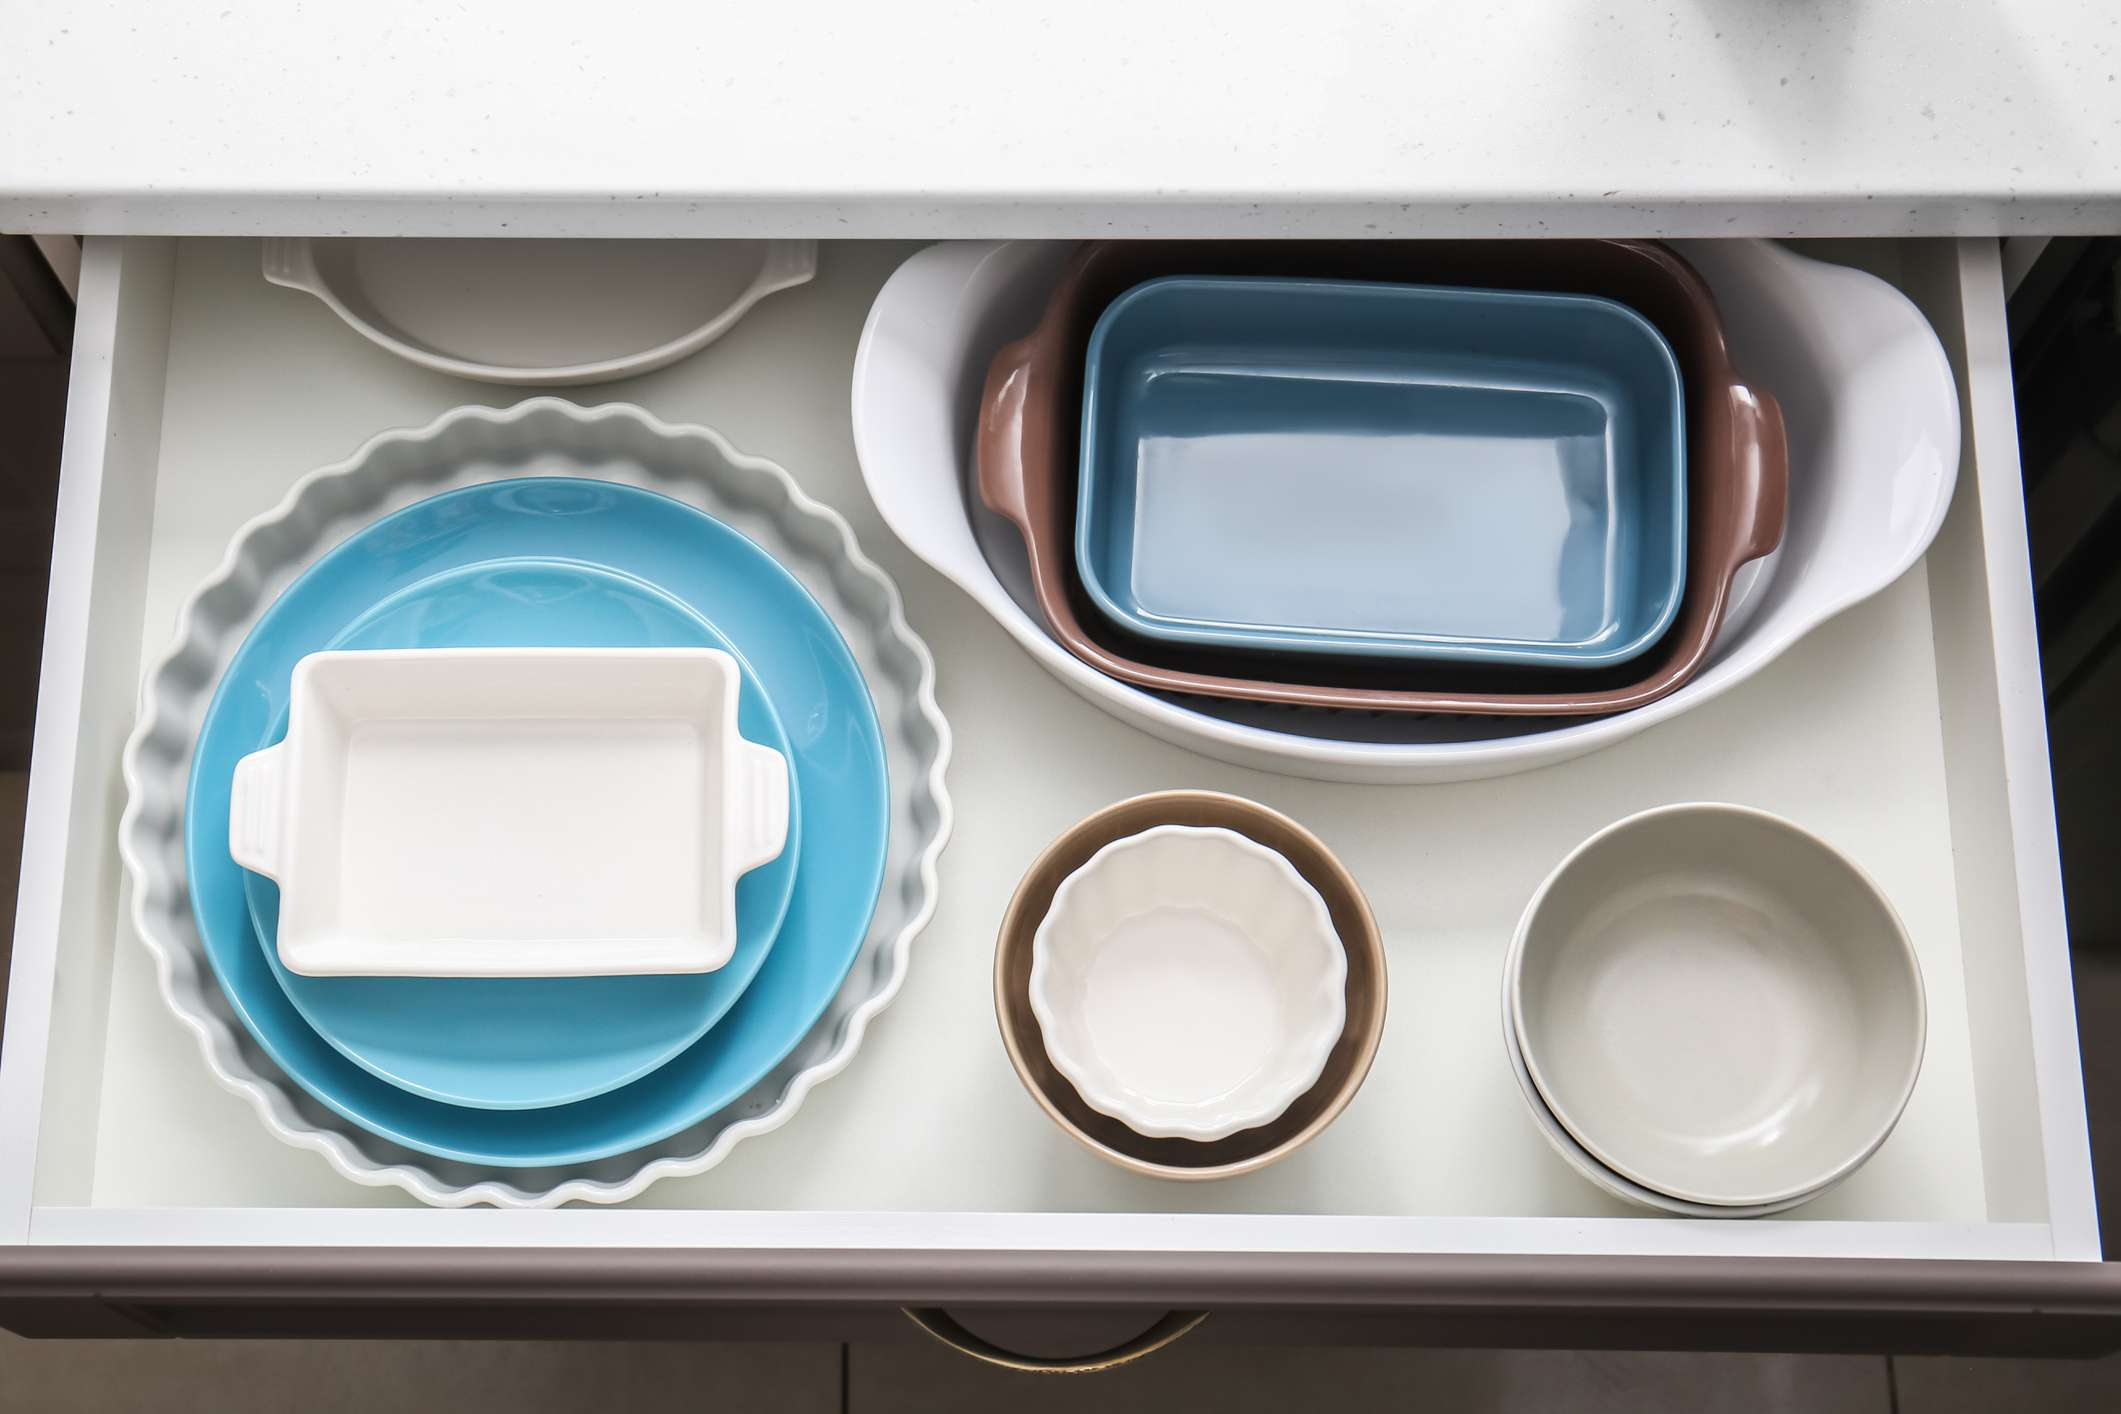 casserole dishes in a rawer